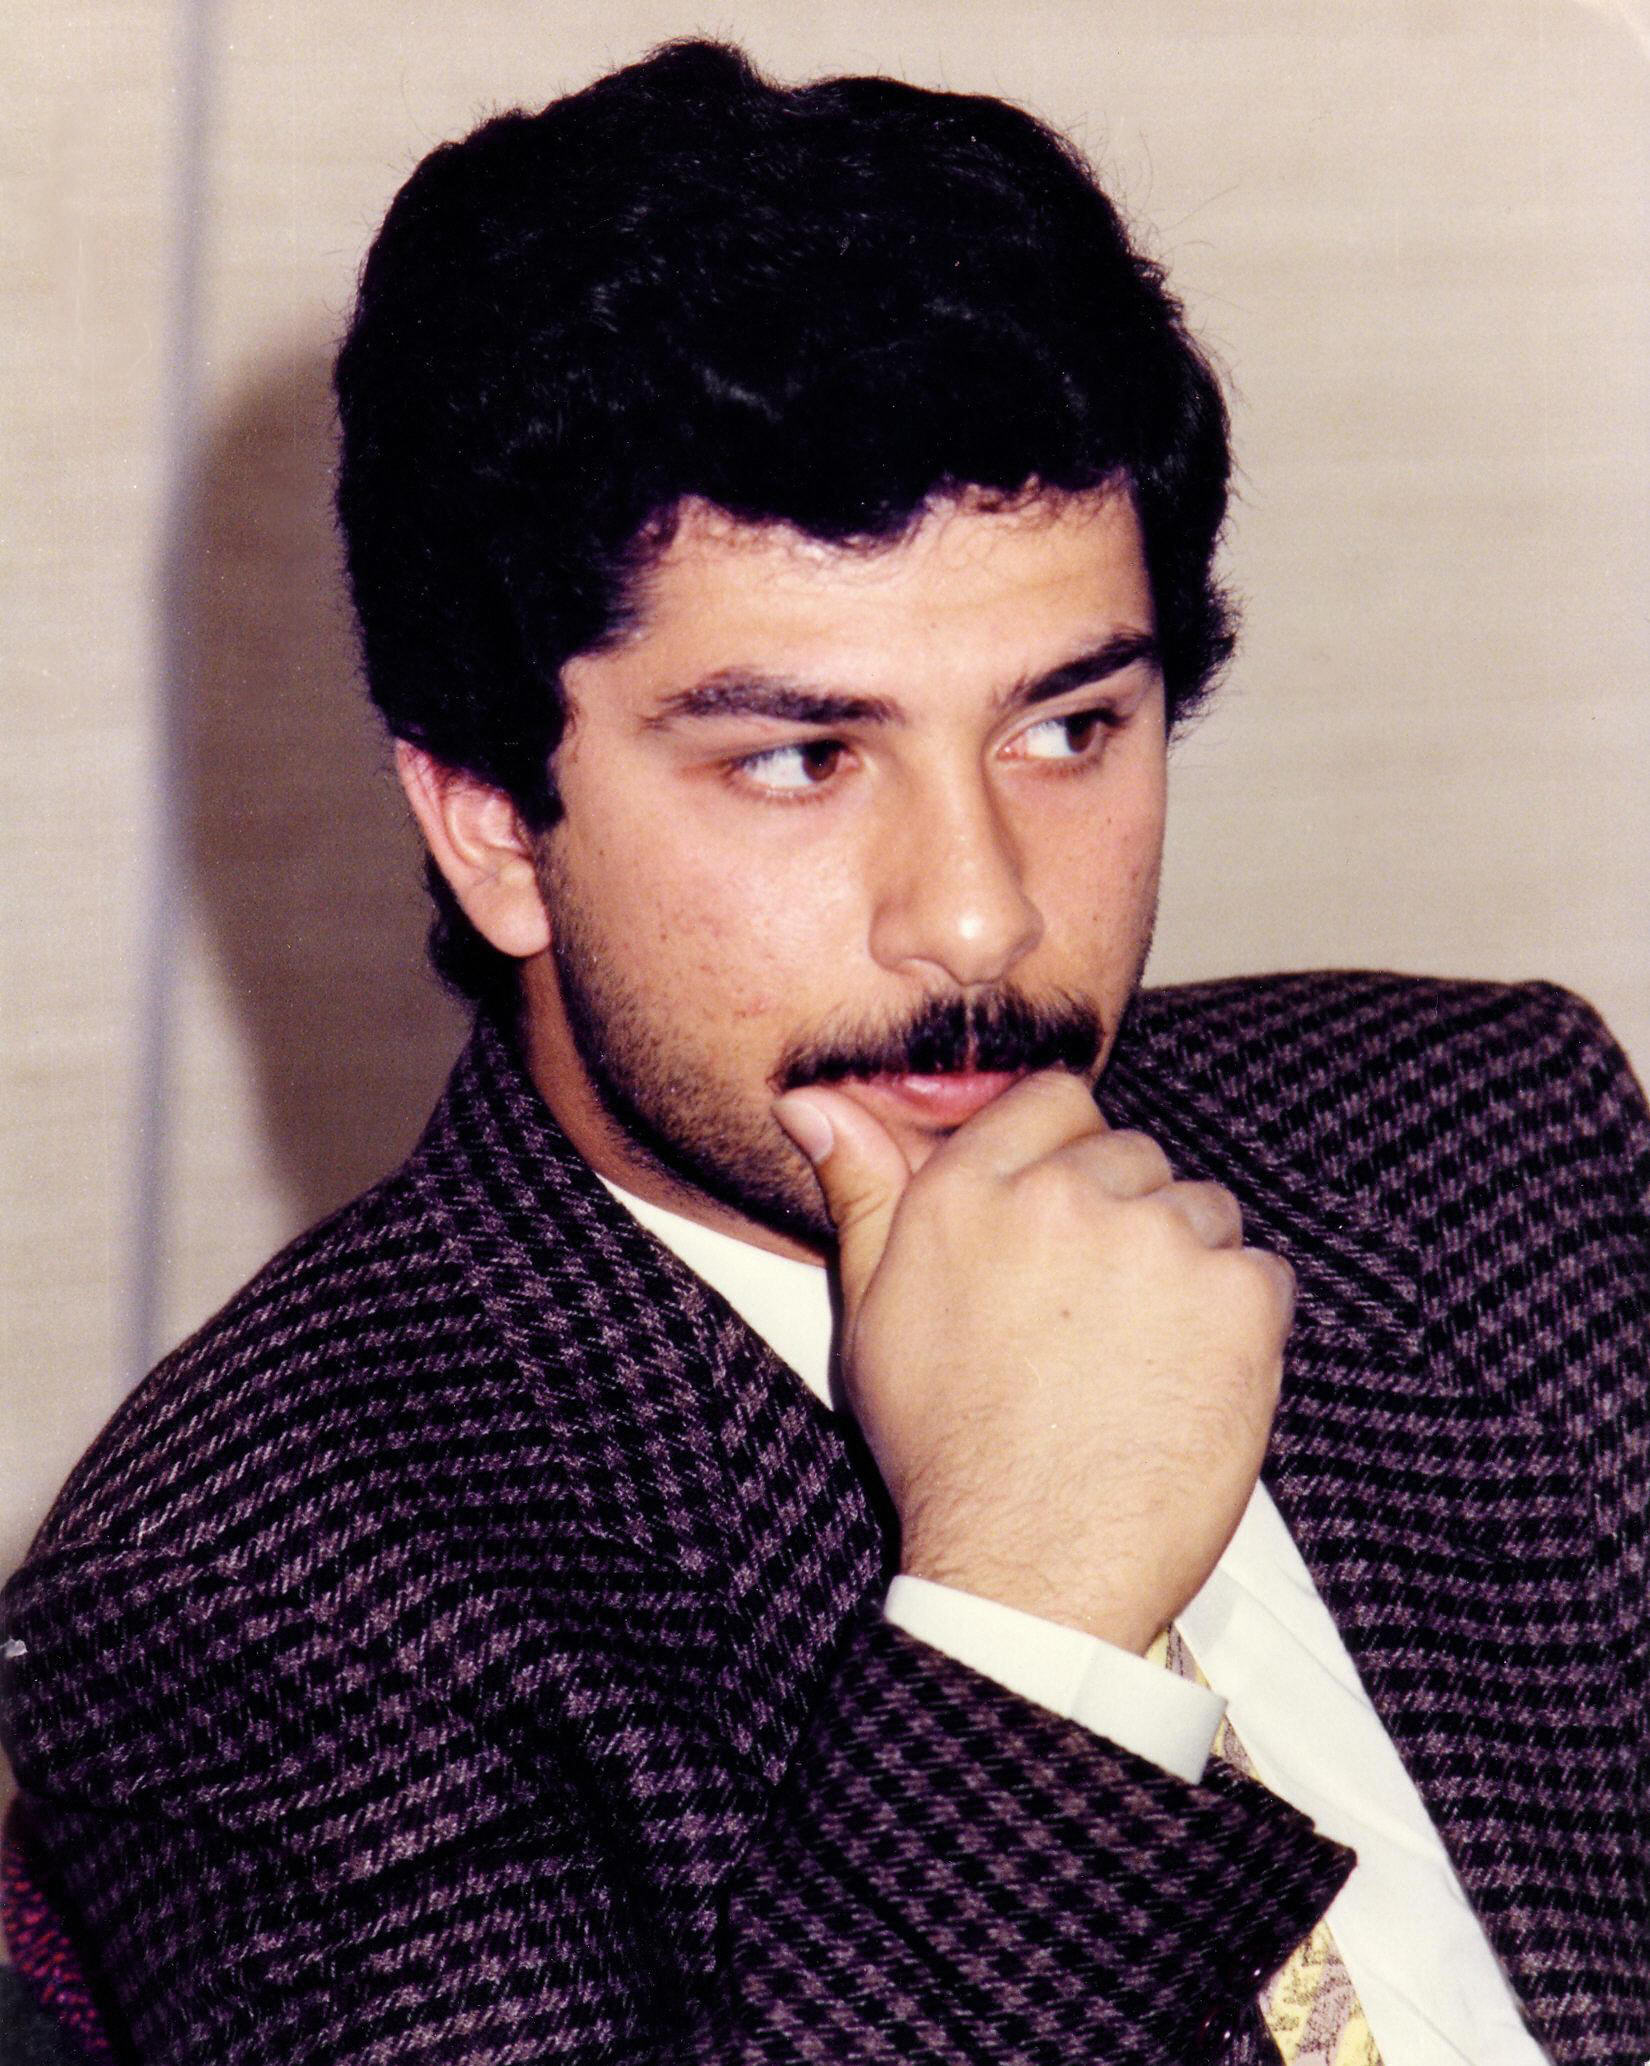 <b>$15 million: Qusay Hussein (removed)</b>                                   Qusay Hussein was Saddam Hussein's second son, and believed to be the chosen successor for his father. Qusay lead Iraq's intelligence and security services and was also involved in the weapons program. Qusay was killed in the same 2003 raid that killed his brother Uday.